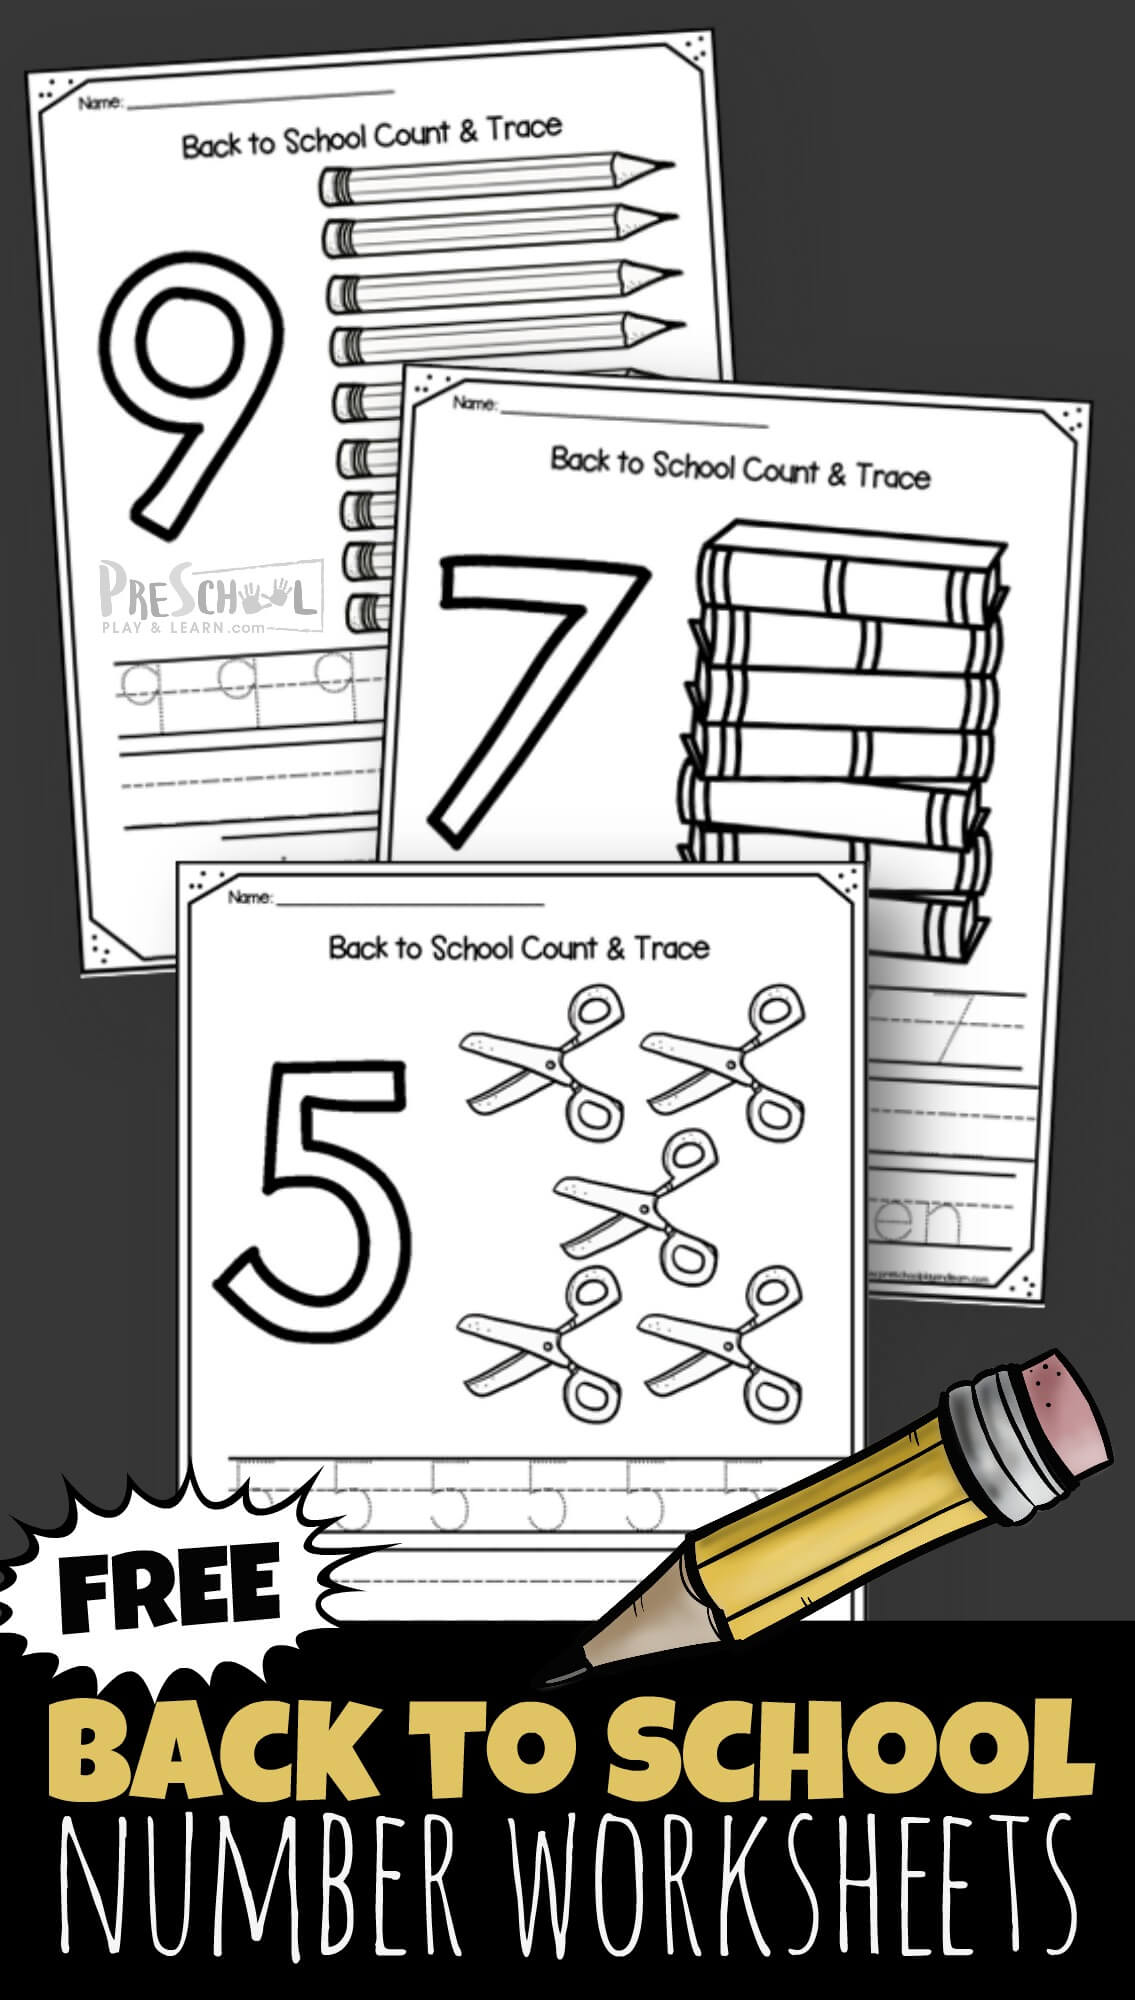 Free Back To School 1 10 Number Worksheets